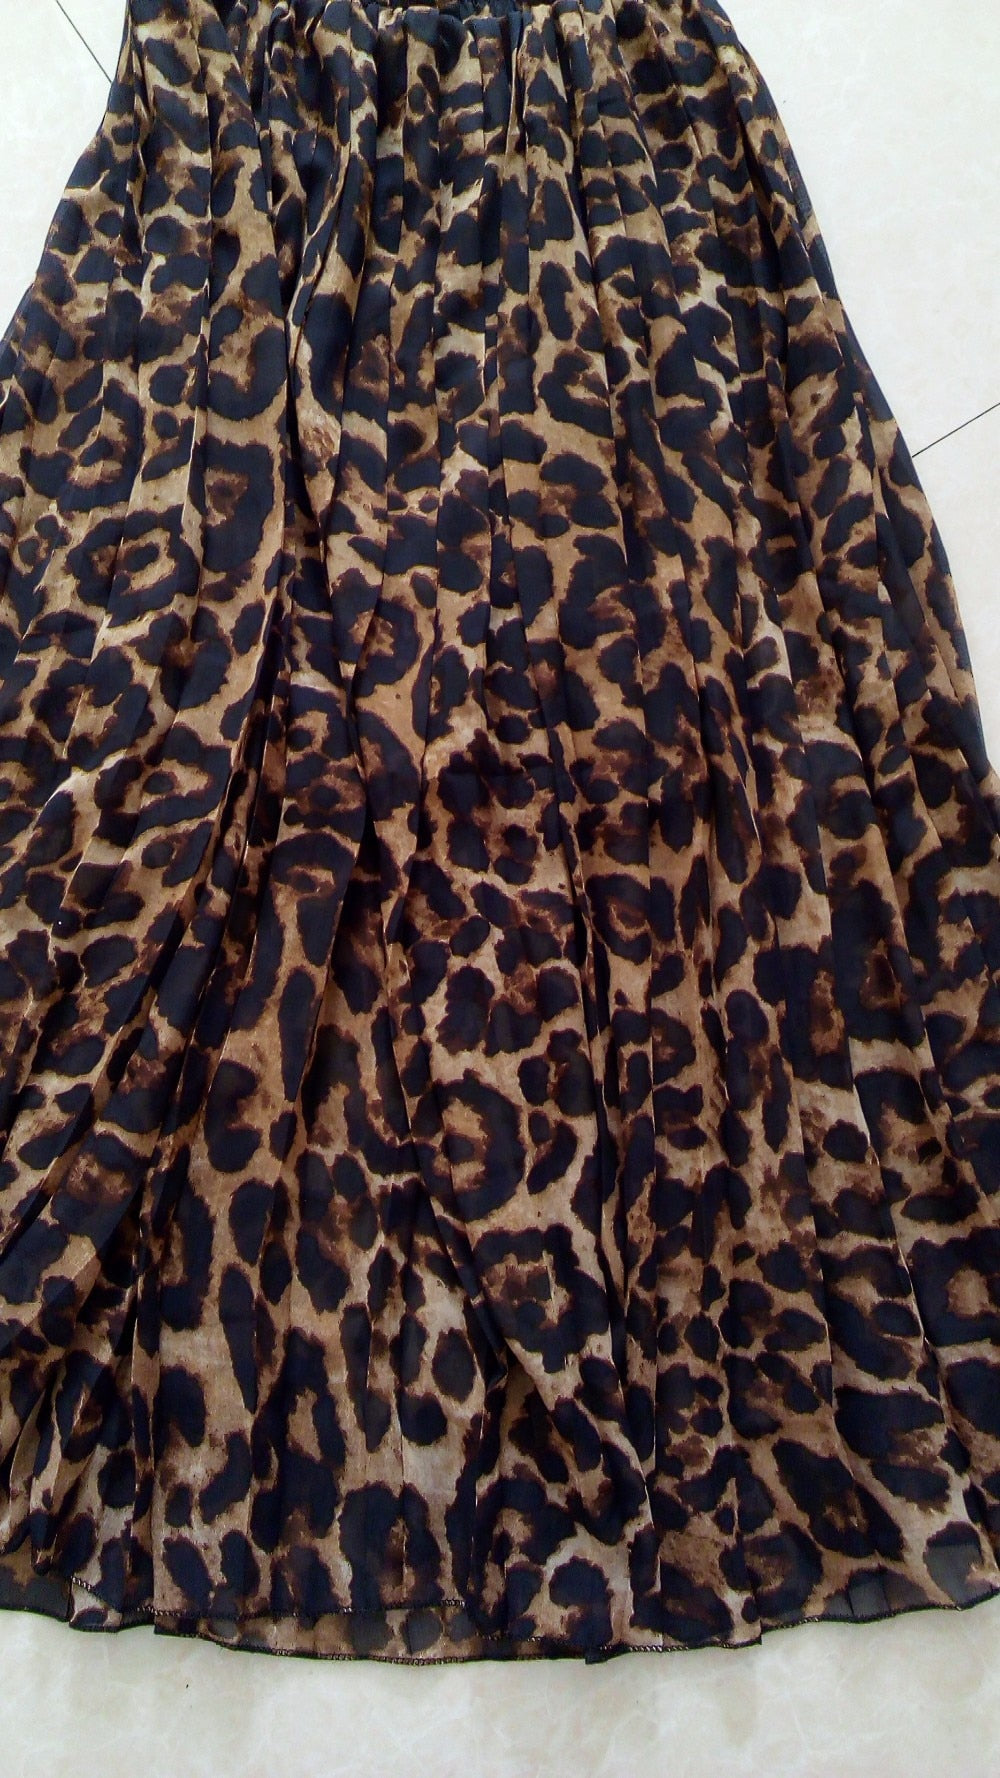 Women's Summer Beach Leopard Casual Chiffon Max Skirt